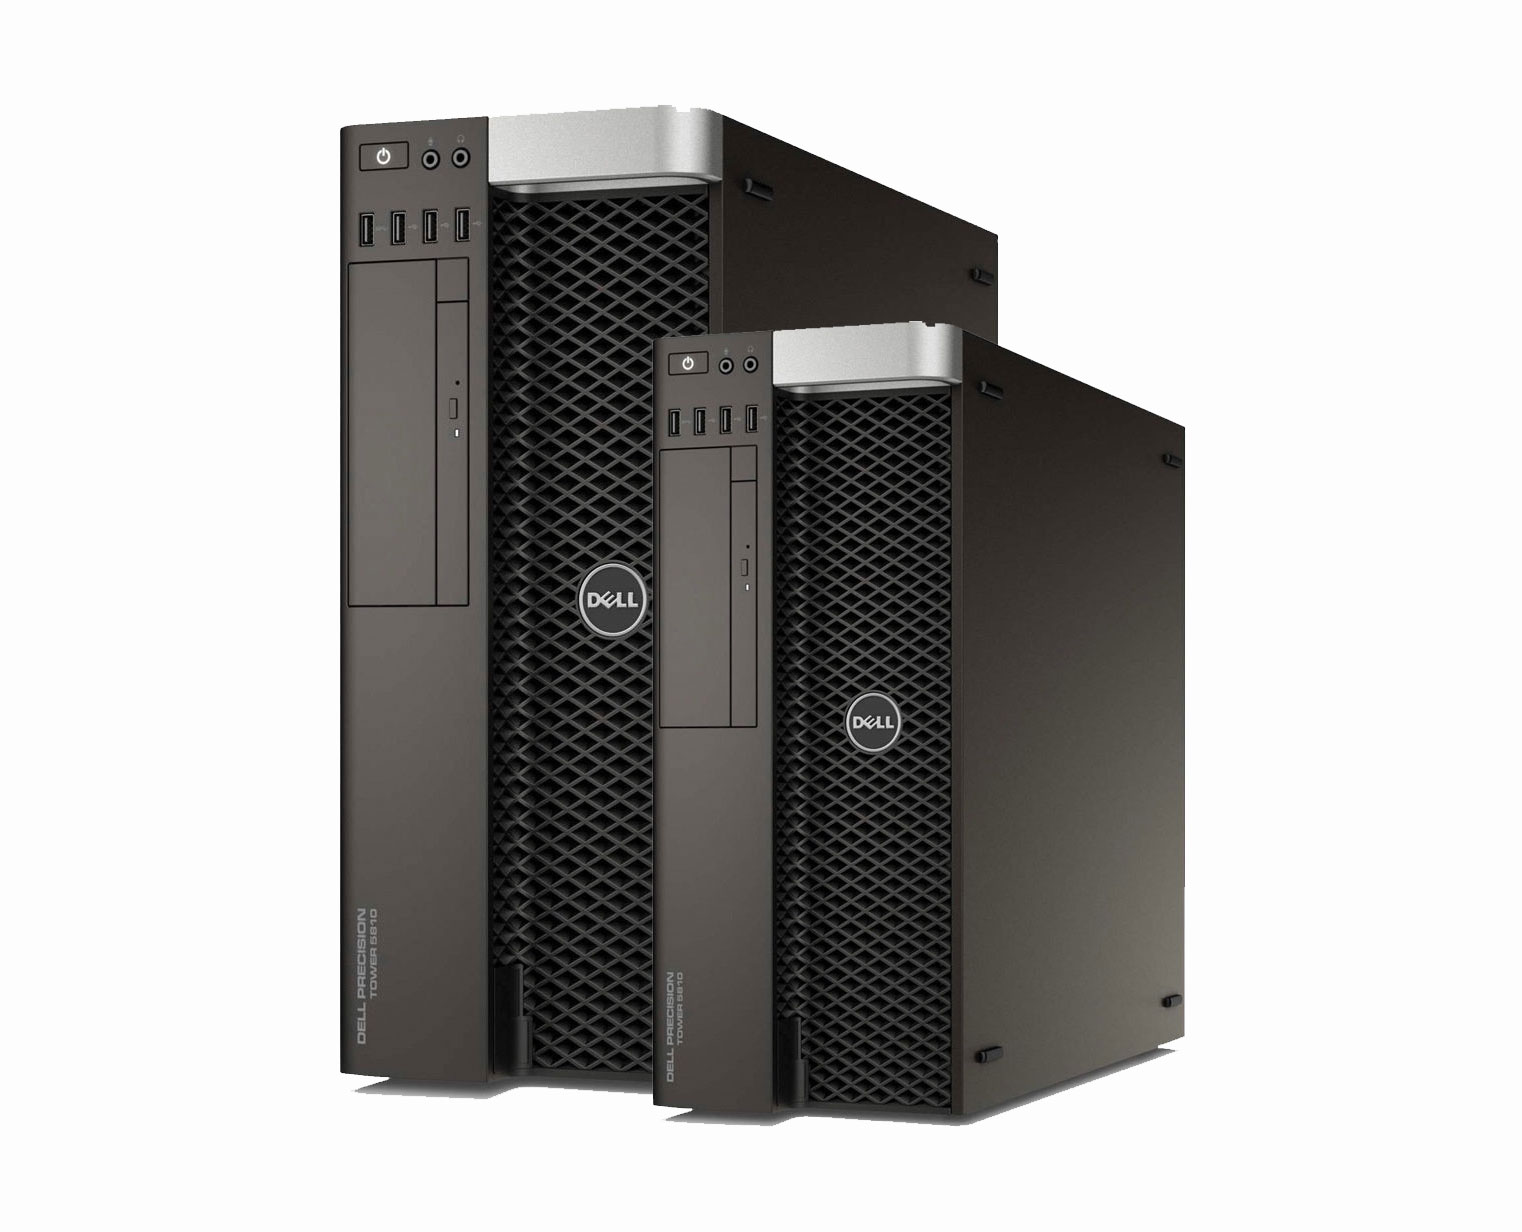 Performance - Dell Precision Tower 5000 Series Tower